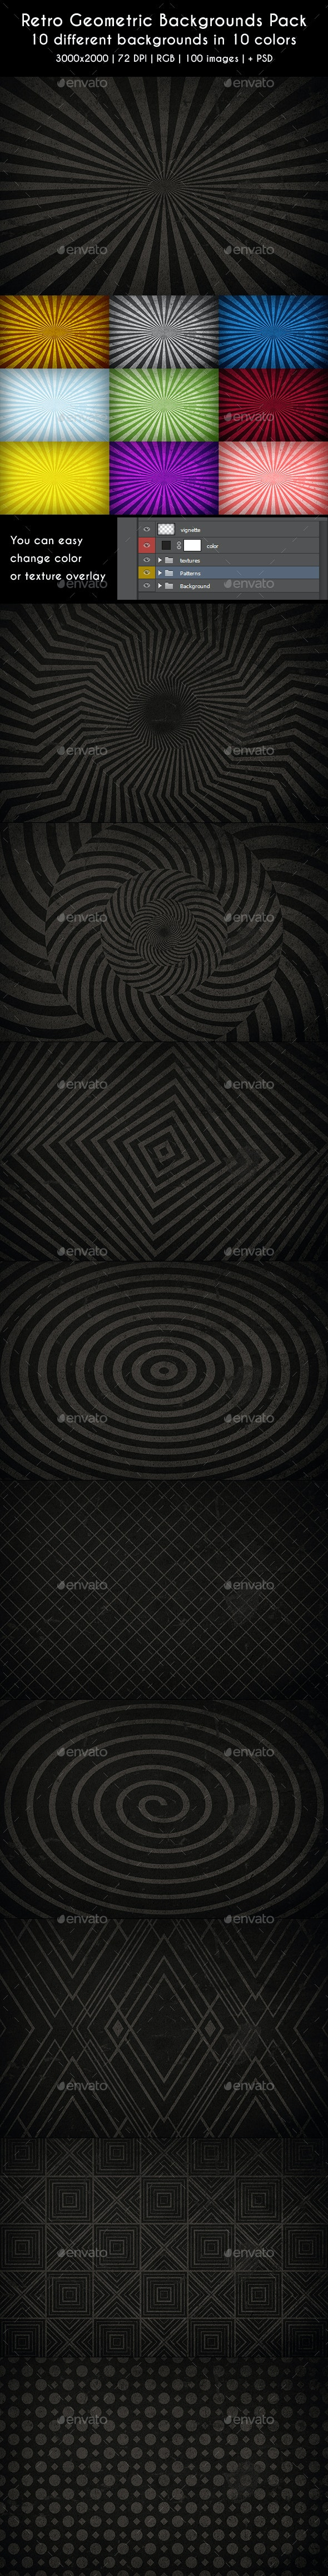 Retro Geometric Backgrounds Pack PSD - Miscellaneous Backgrounds